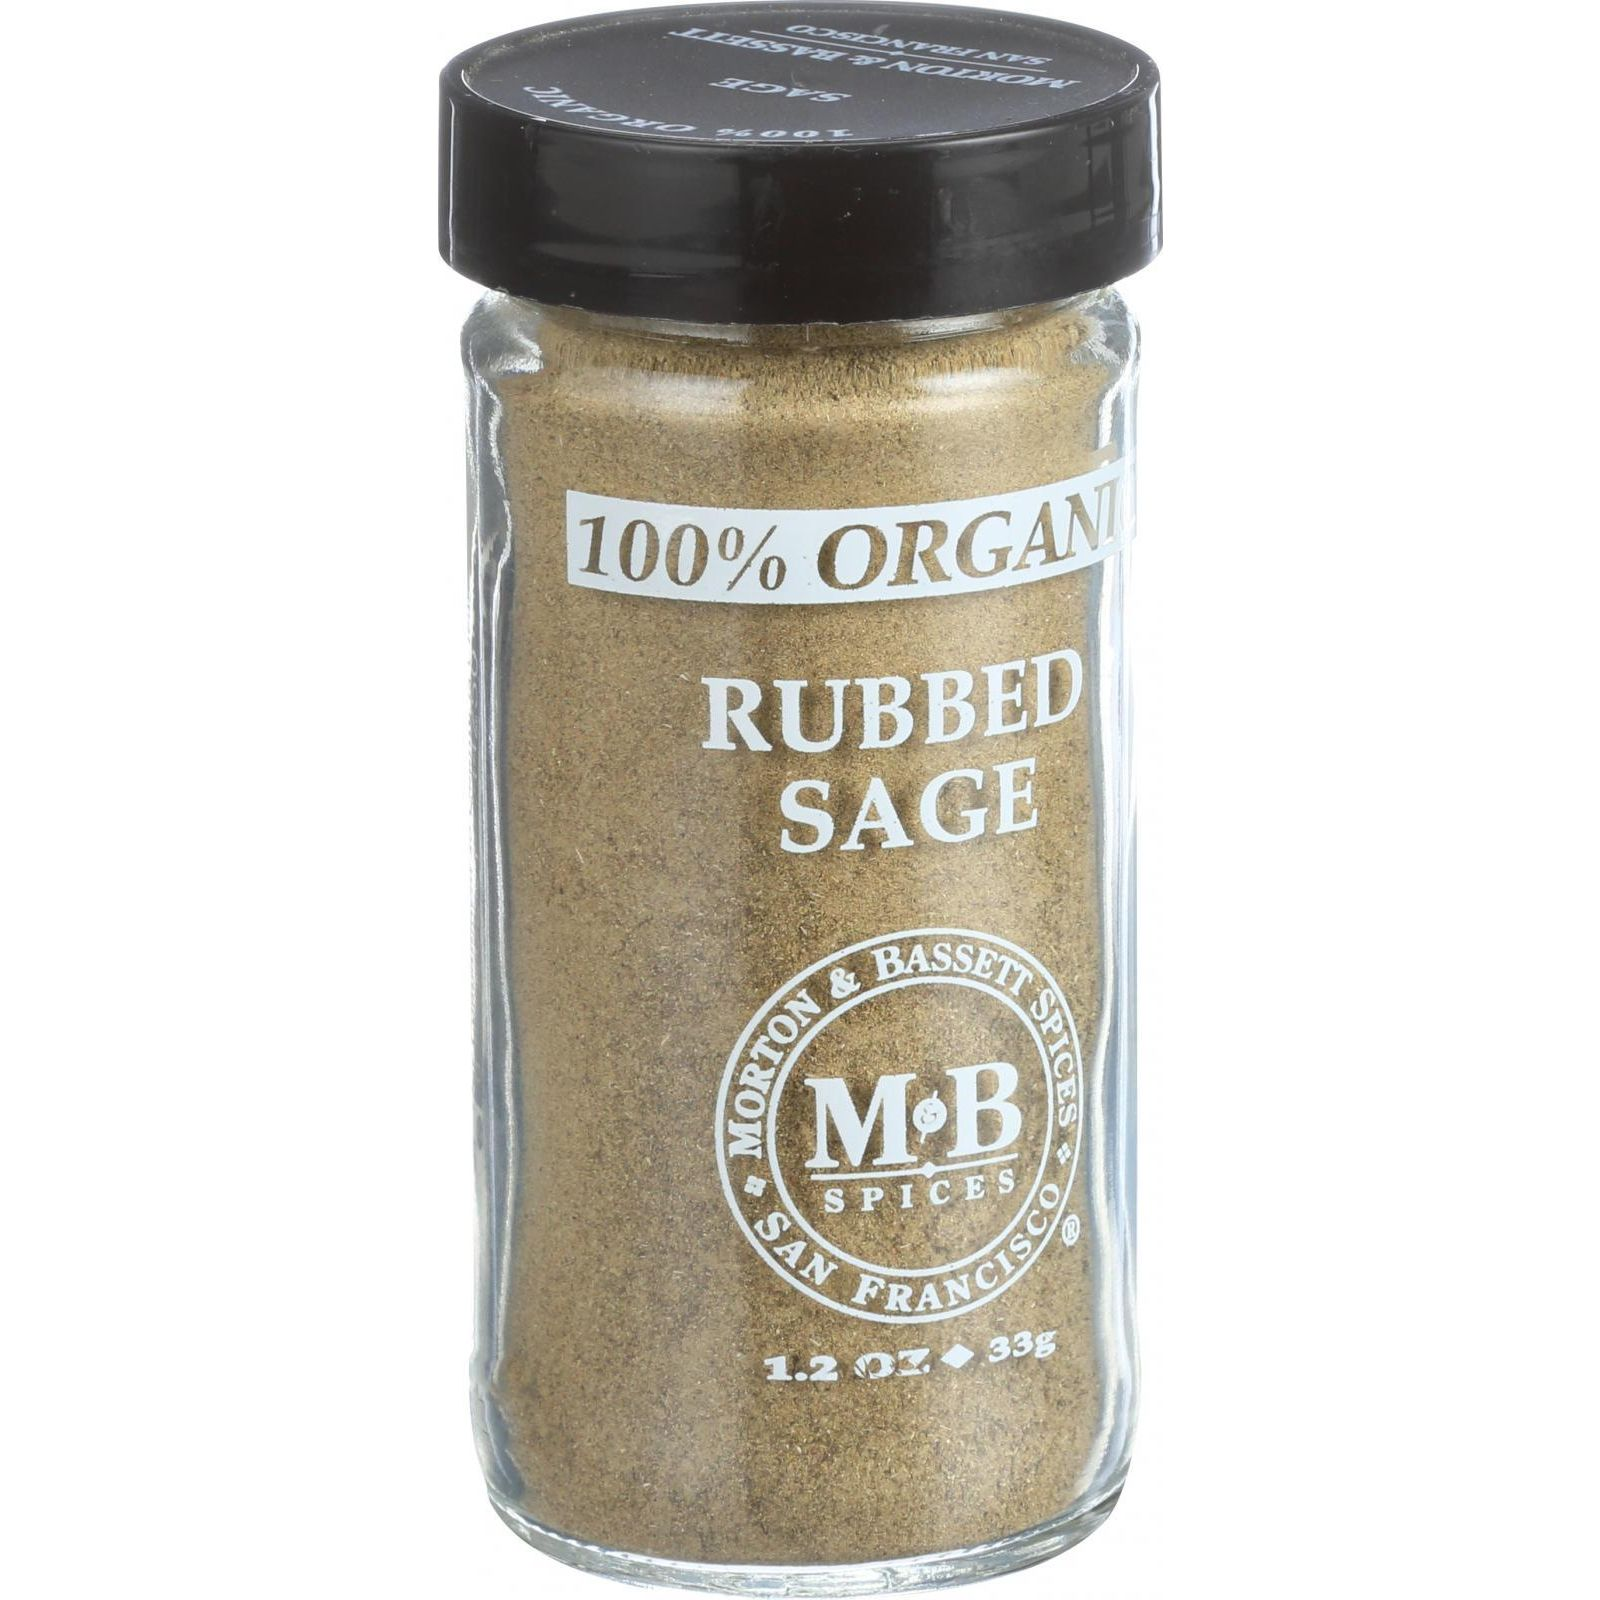 Morton And Bassett 100% Organic Seasoning - Rubbed Sage - 1.2 Oz - Case Of 3